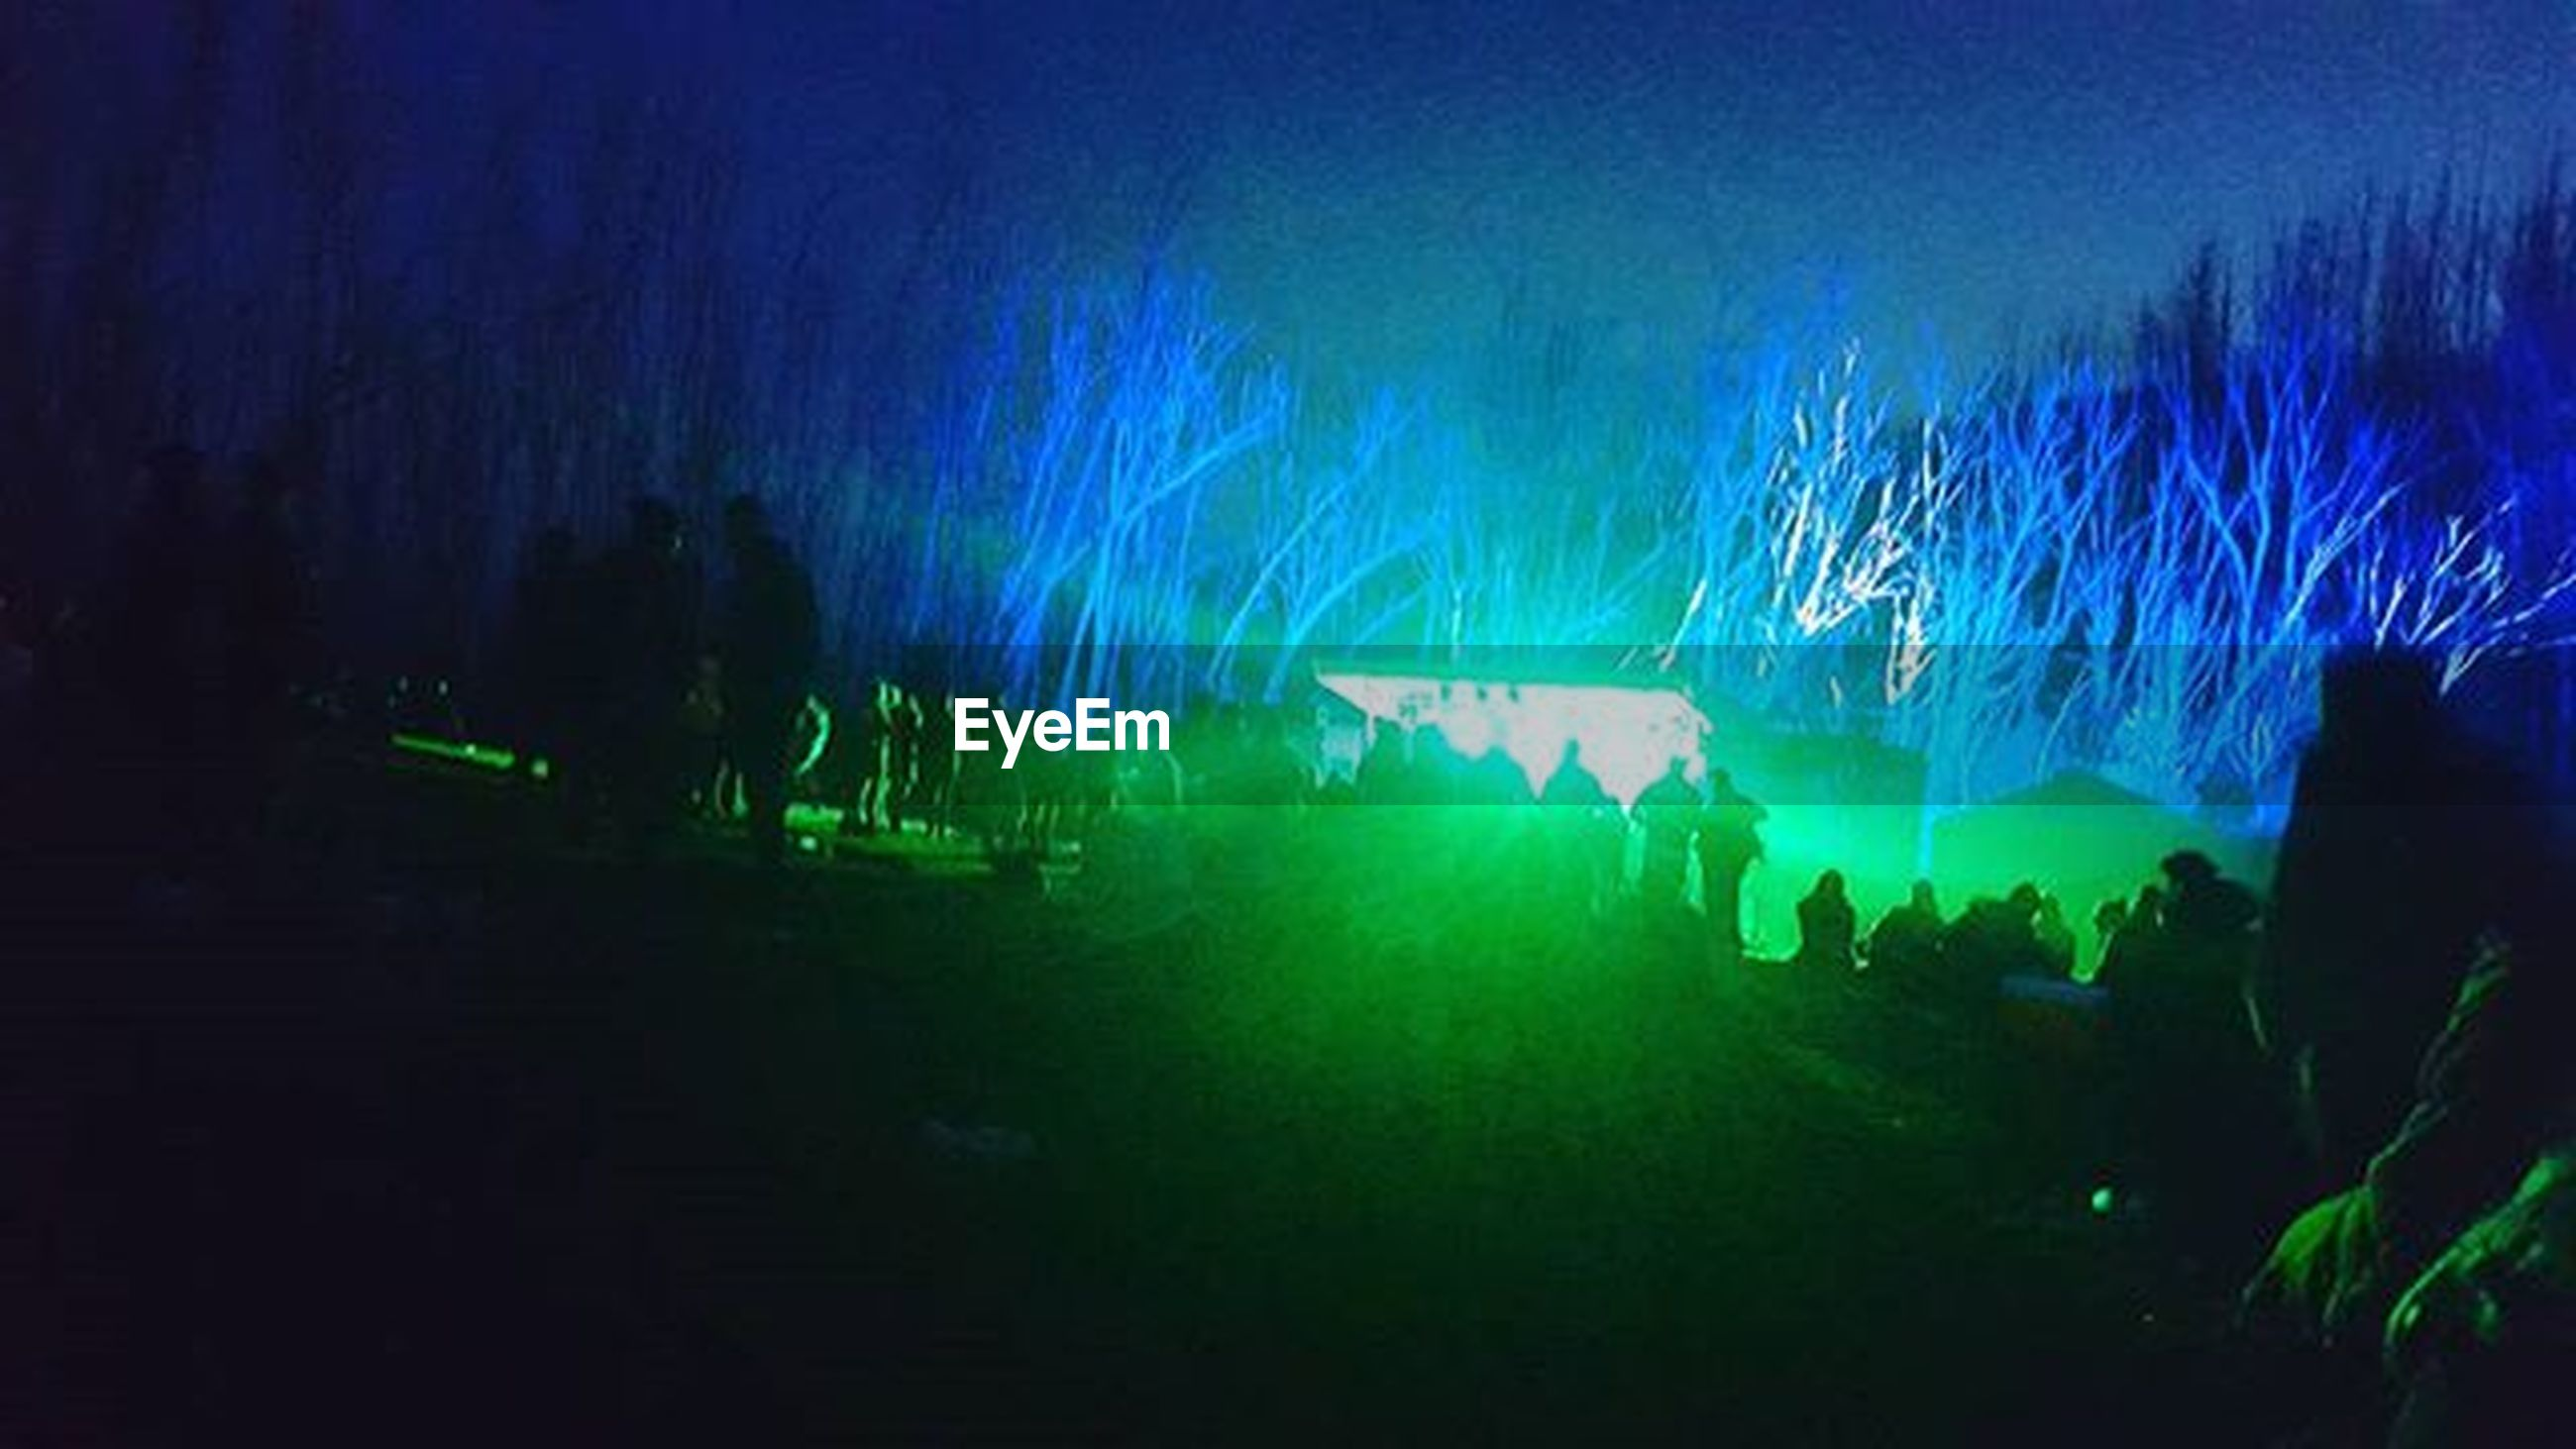 night, illuminated, blue, light - natural phenomenon, arts culture and entertainment, silhouette, men, dark, tree, lifestyles, glowing, outdoors, leisure activity, green color, event, lighting equipment, sparks, sky, large group of people